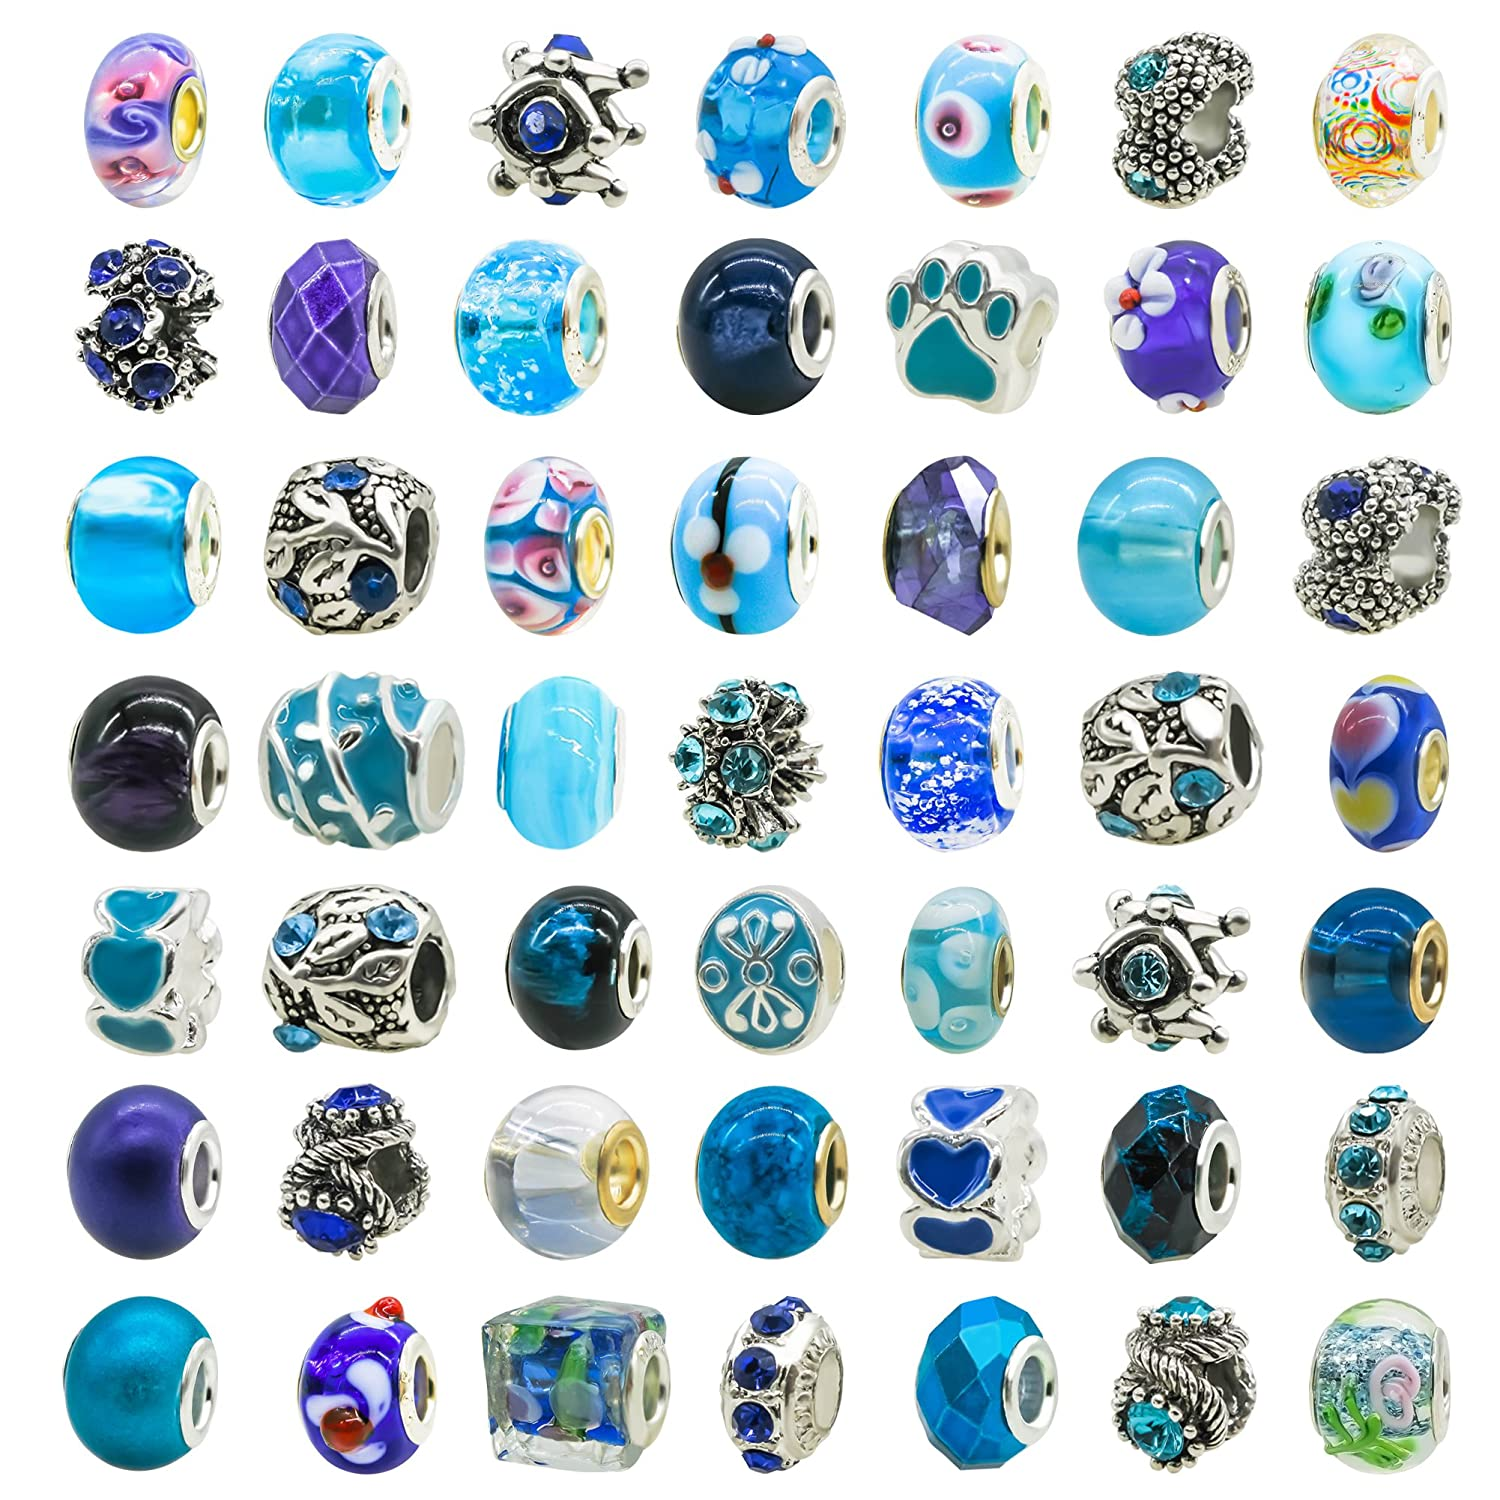 TOAOB 50 Piece Assorted Lampwork Murano Glass Beads Rhinestone Metal European Beads Fit Snake Style Charm Bracelet LLZ00181H